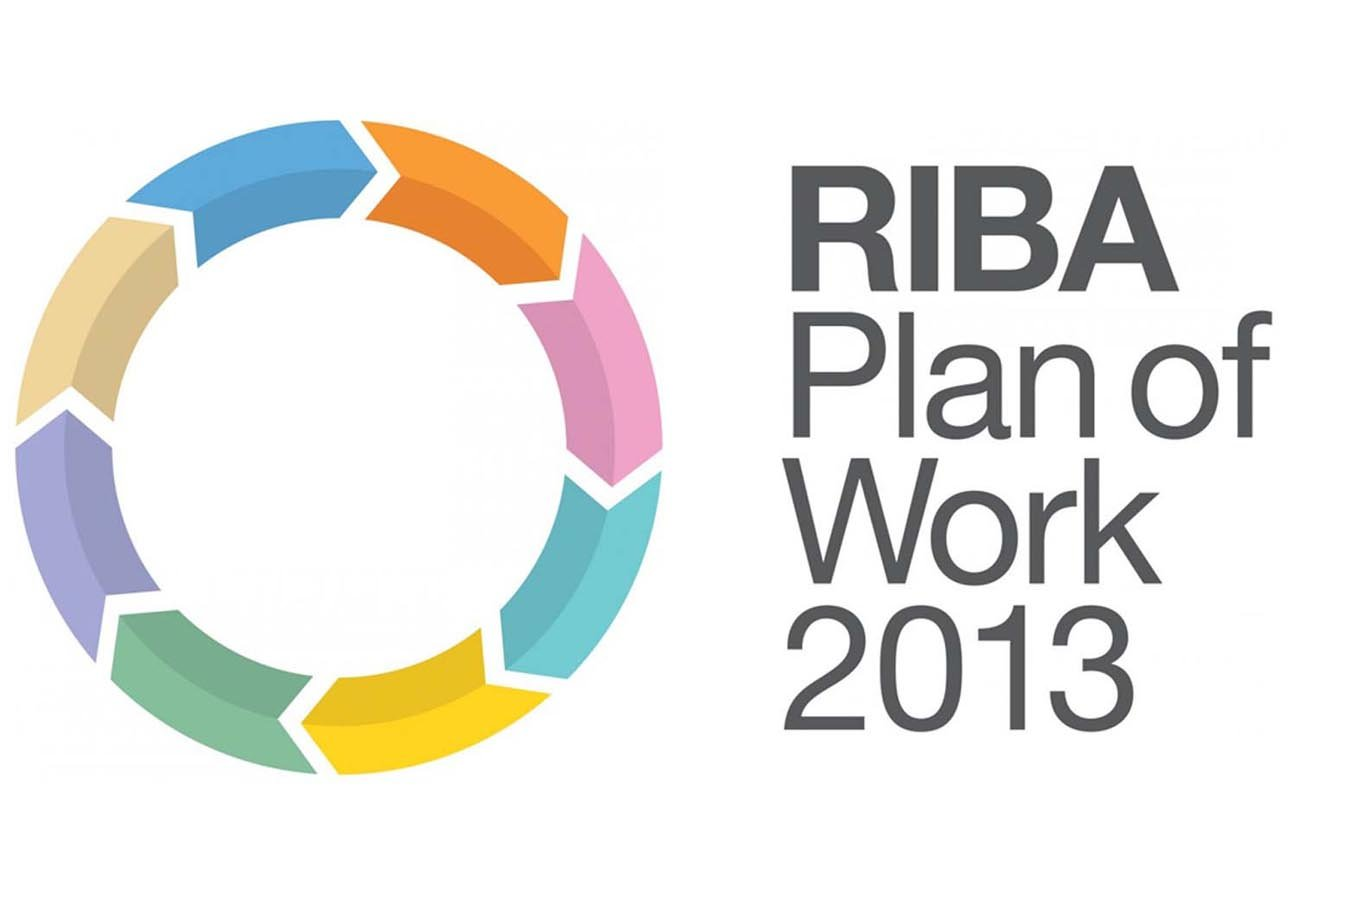 RIBA Work Stages